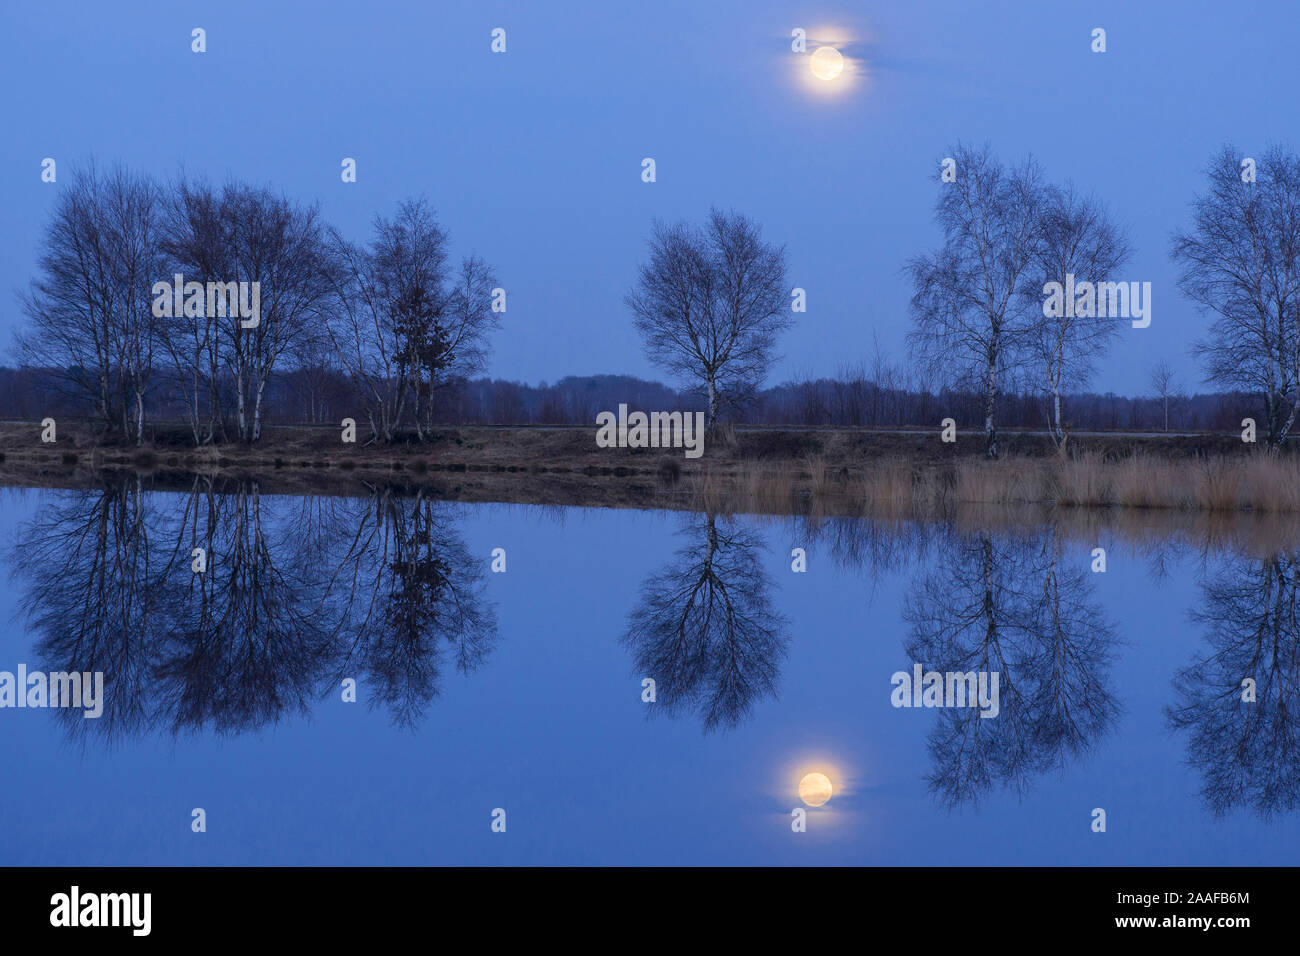 Mondaufgang im Moor Stock Photo